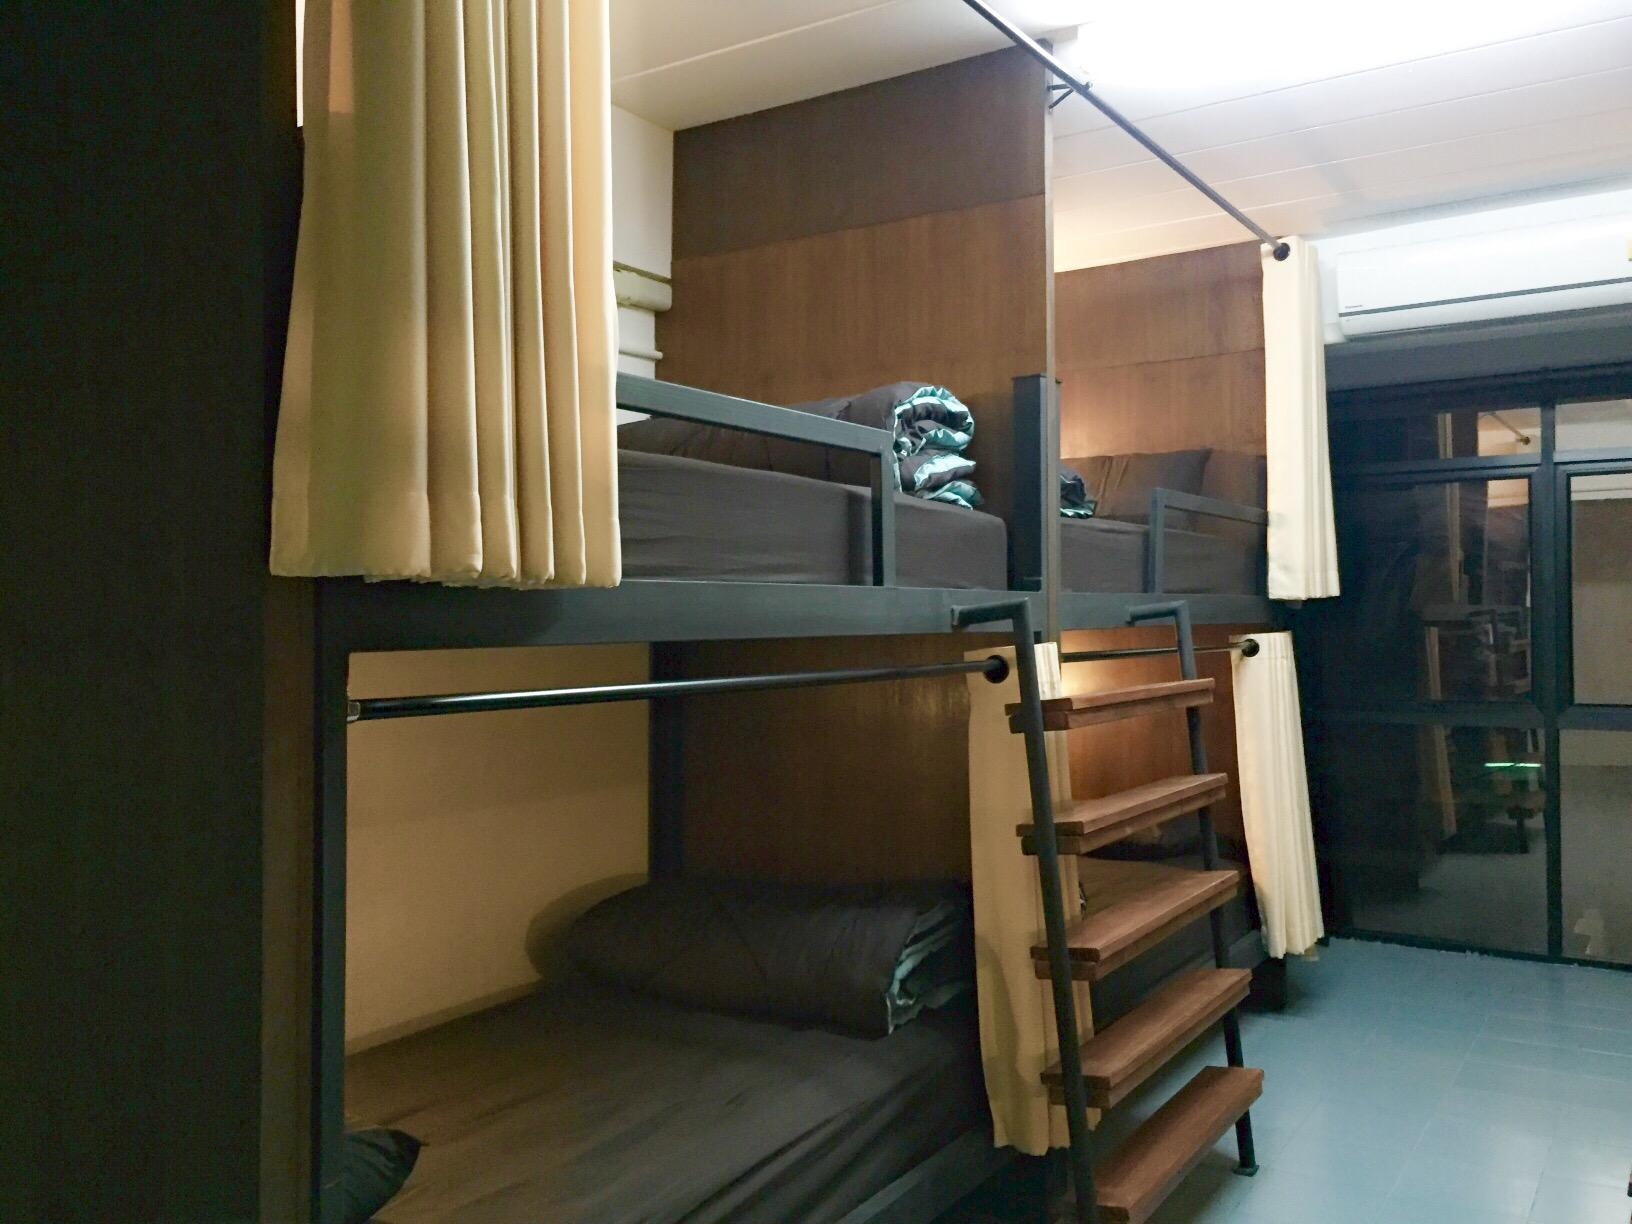 1 Personne en Dortoir 9 Lits - Mixte (1 Person in 9-Bed Dormitory - Mixed)